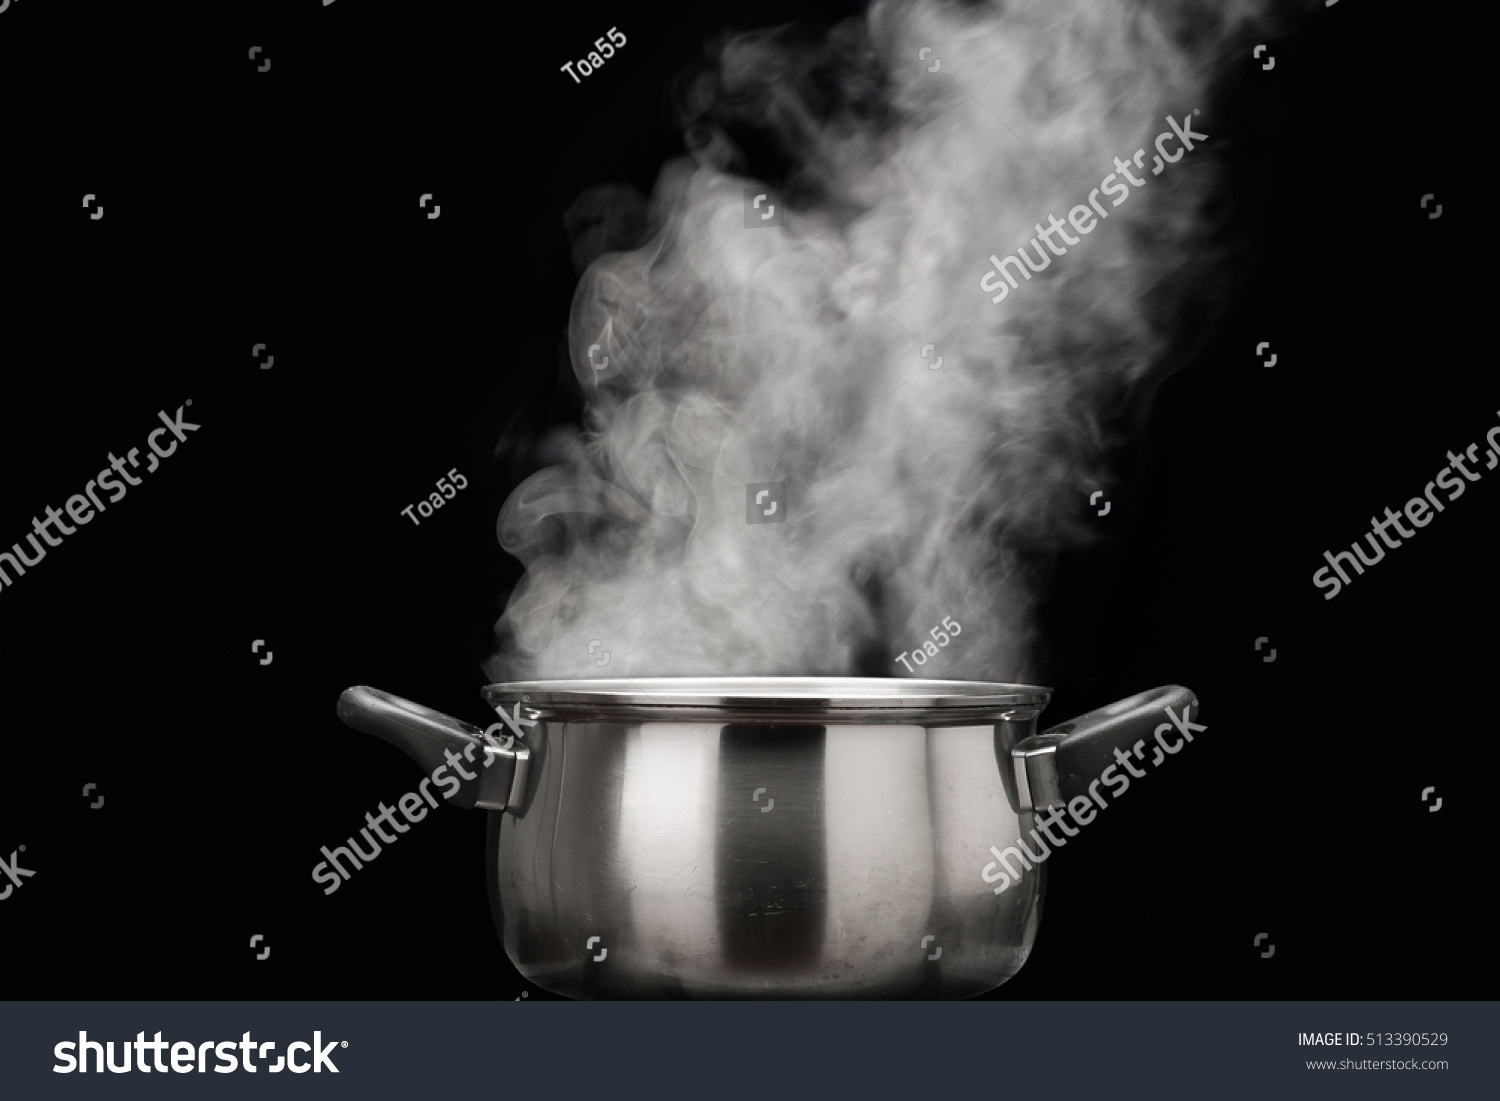 Steam Over Cooking Pot Stock Photo 513390529 - Shutterstock